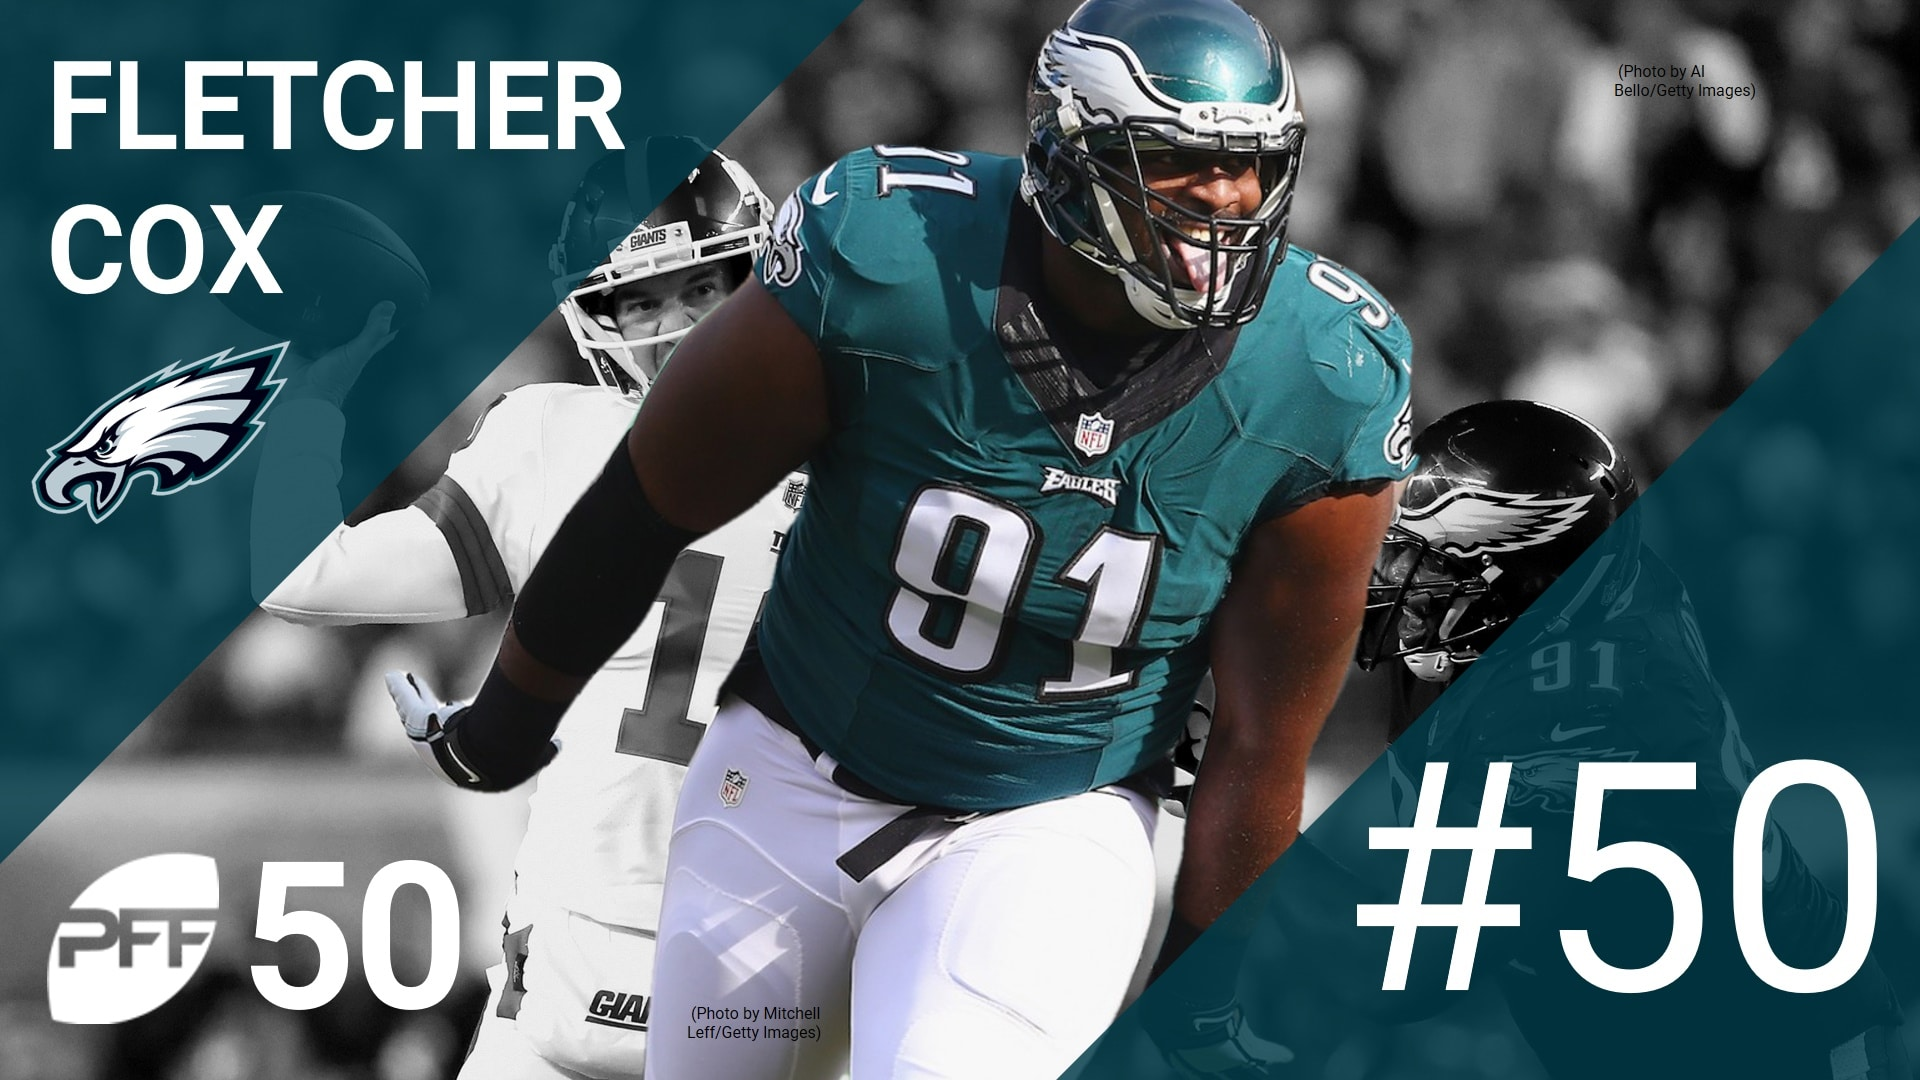 EAGLES D LINEMAN FLETCHER COX IS 50TH BEST PLAYER IN THE NFL